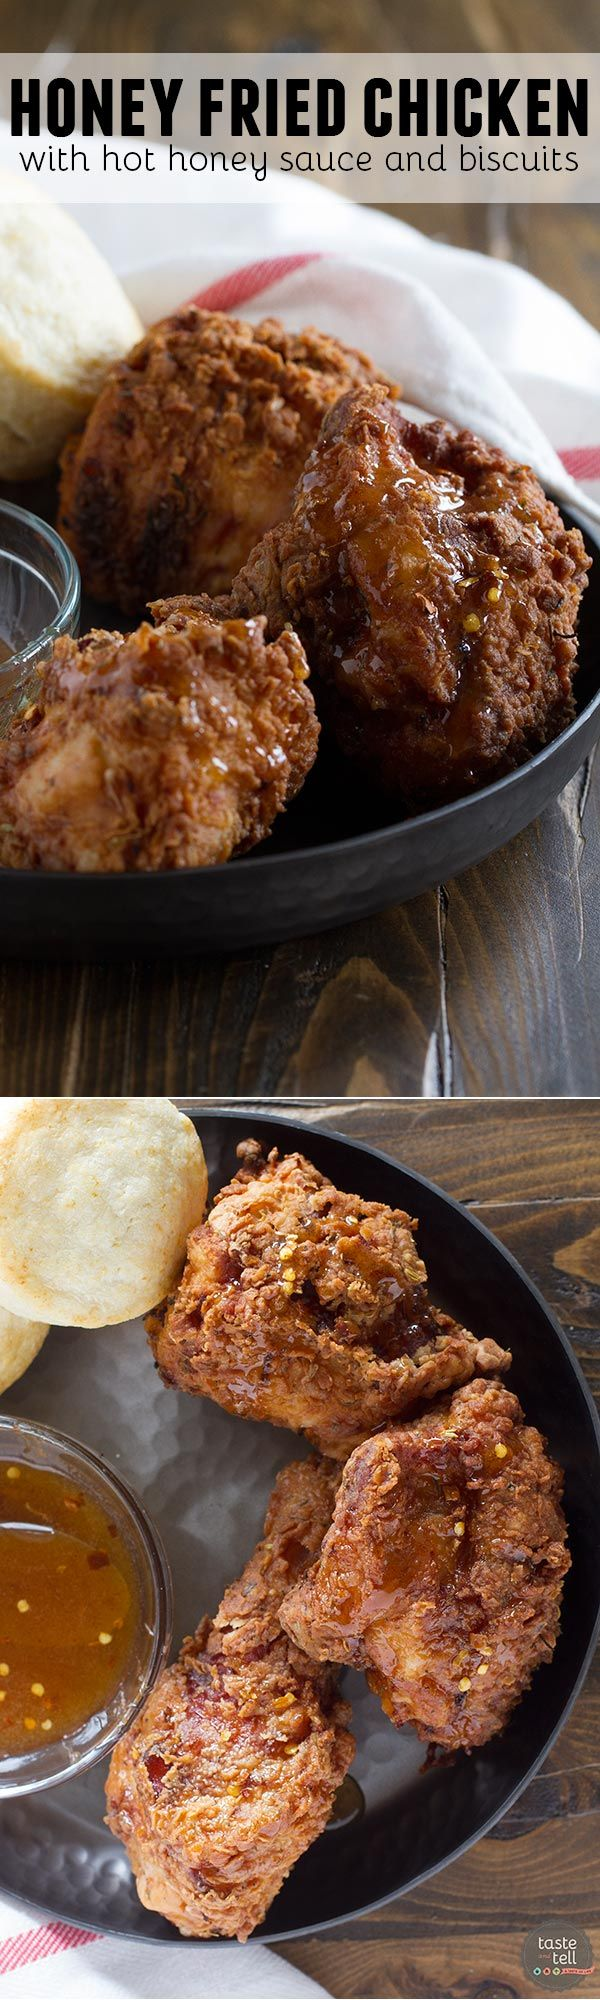 Get ready to have your mind blown - this Honey Fried Chicken with Hot Honey Sauce and Biscuits just may be the moistest, most delicious fried chicken recipe you've ever had. Served up with buttermilk biscuits and a sweet and spice Hot Honey Sauce, this is one recipe that is sure to impress.: